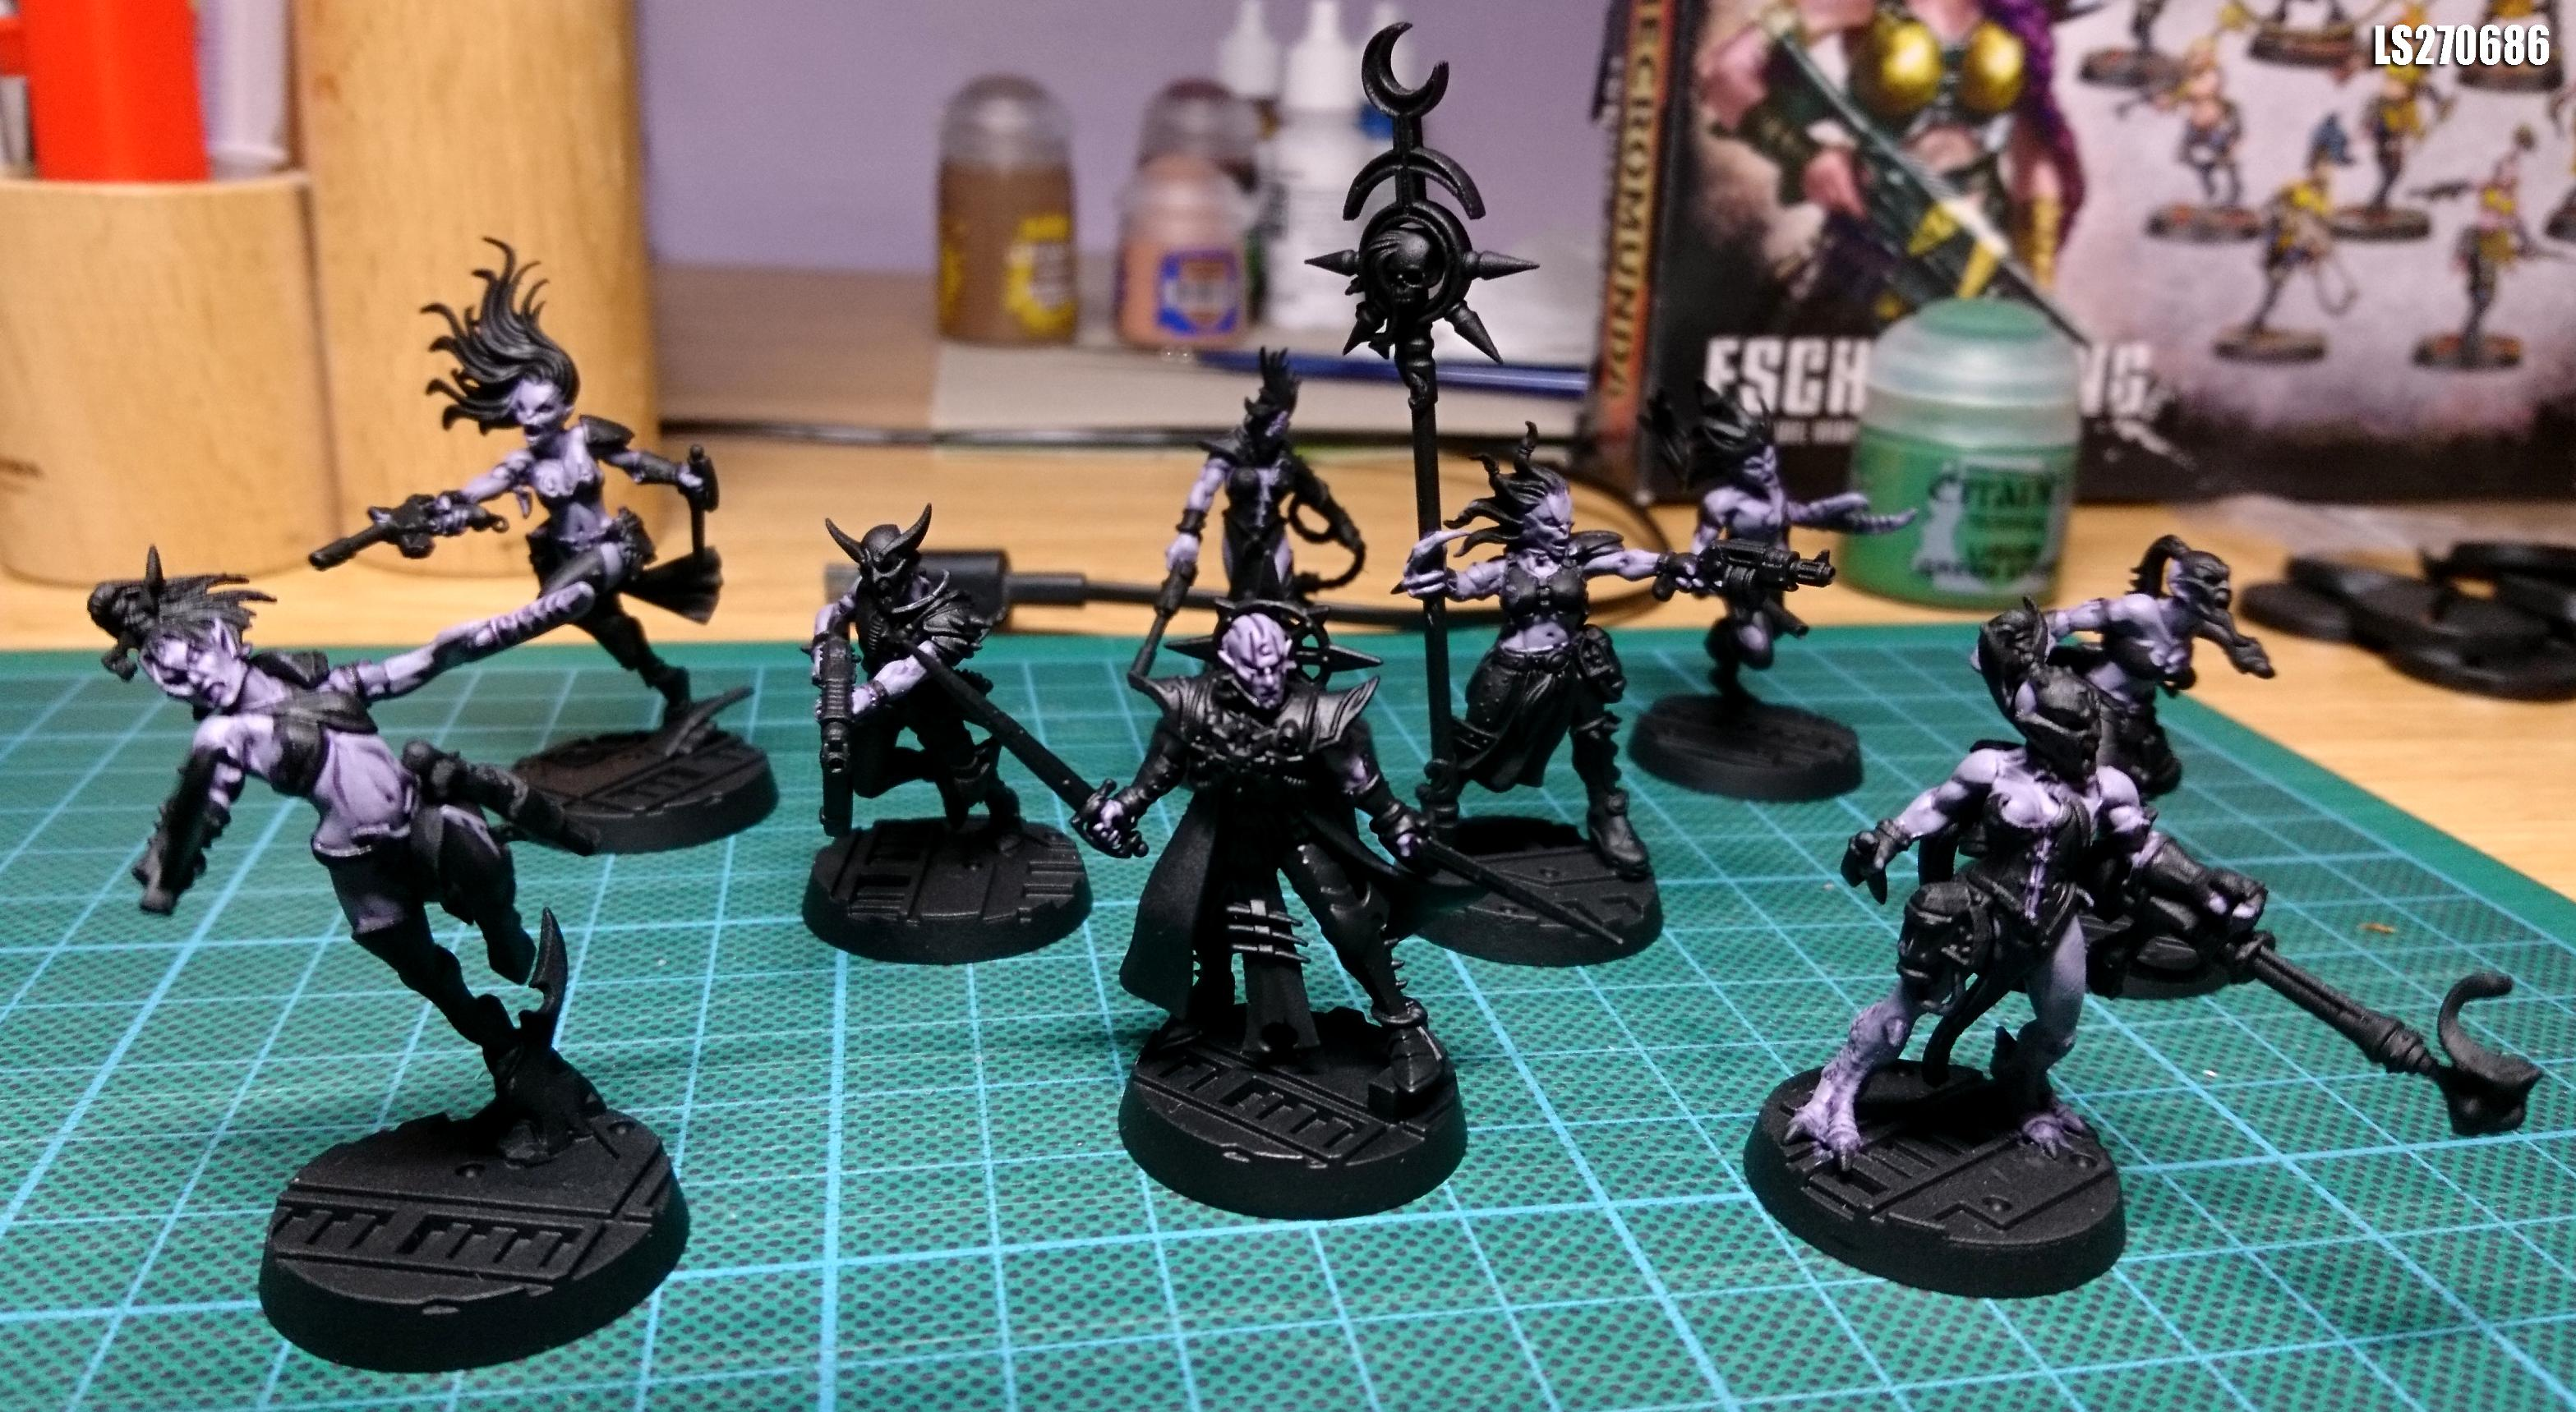 Chaos, Conversion, Cultist, Kill Team, Kit Bashing, Lust, Pleasure, She Who Thirsts, Slaanesh, Warhammer 40,000, Work In Progress